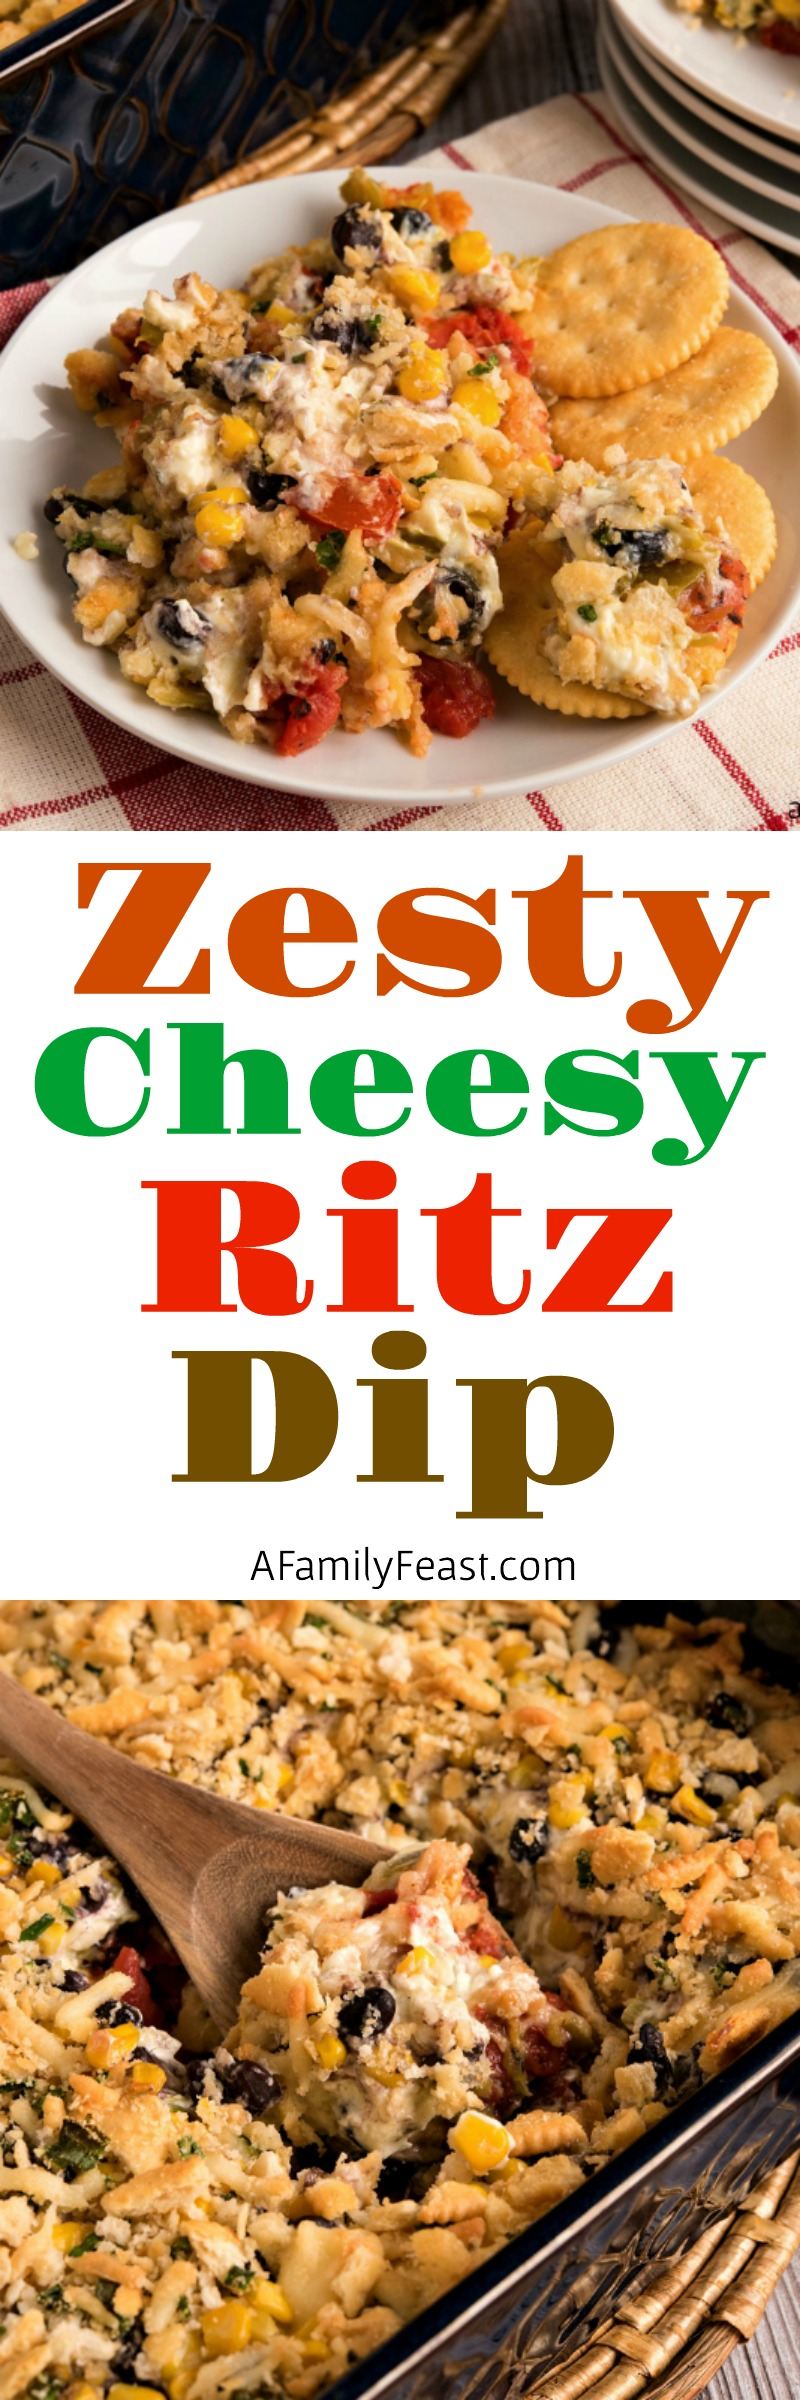 Zesty Cheesy Ritz Dip